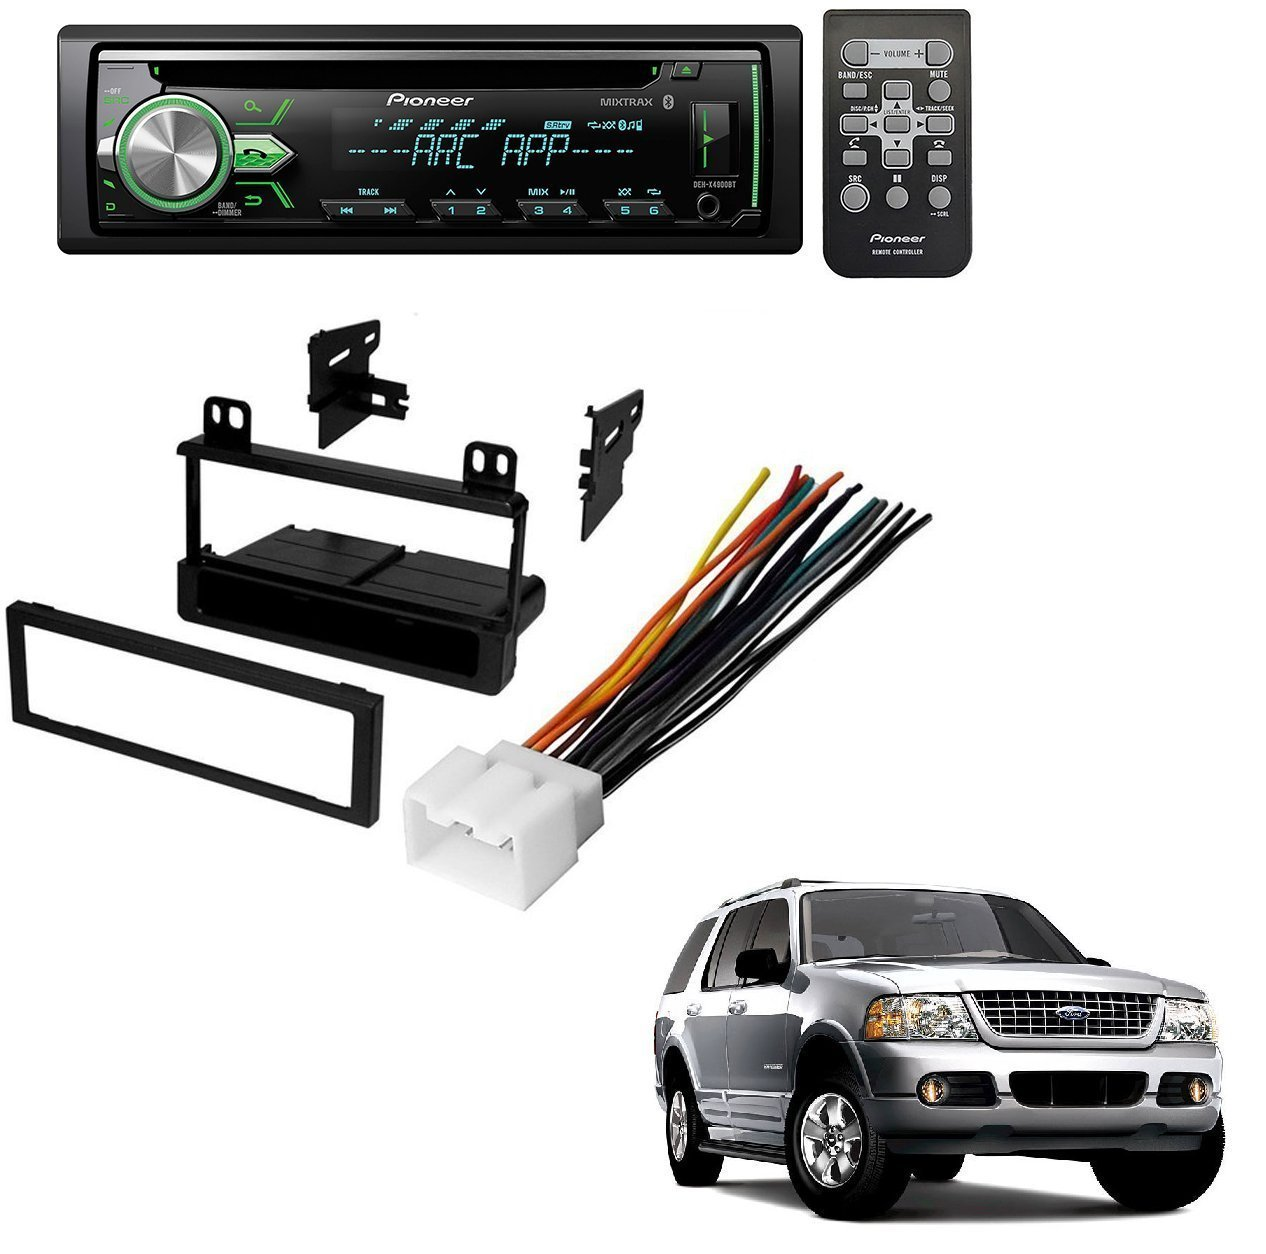 hight resolution of ford 1995 2005 explorer all models car radio stereo radio kit dash installation mounting wiring harness w pioneer deh x4900bt vehicle cd digital music